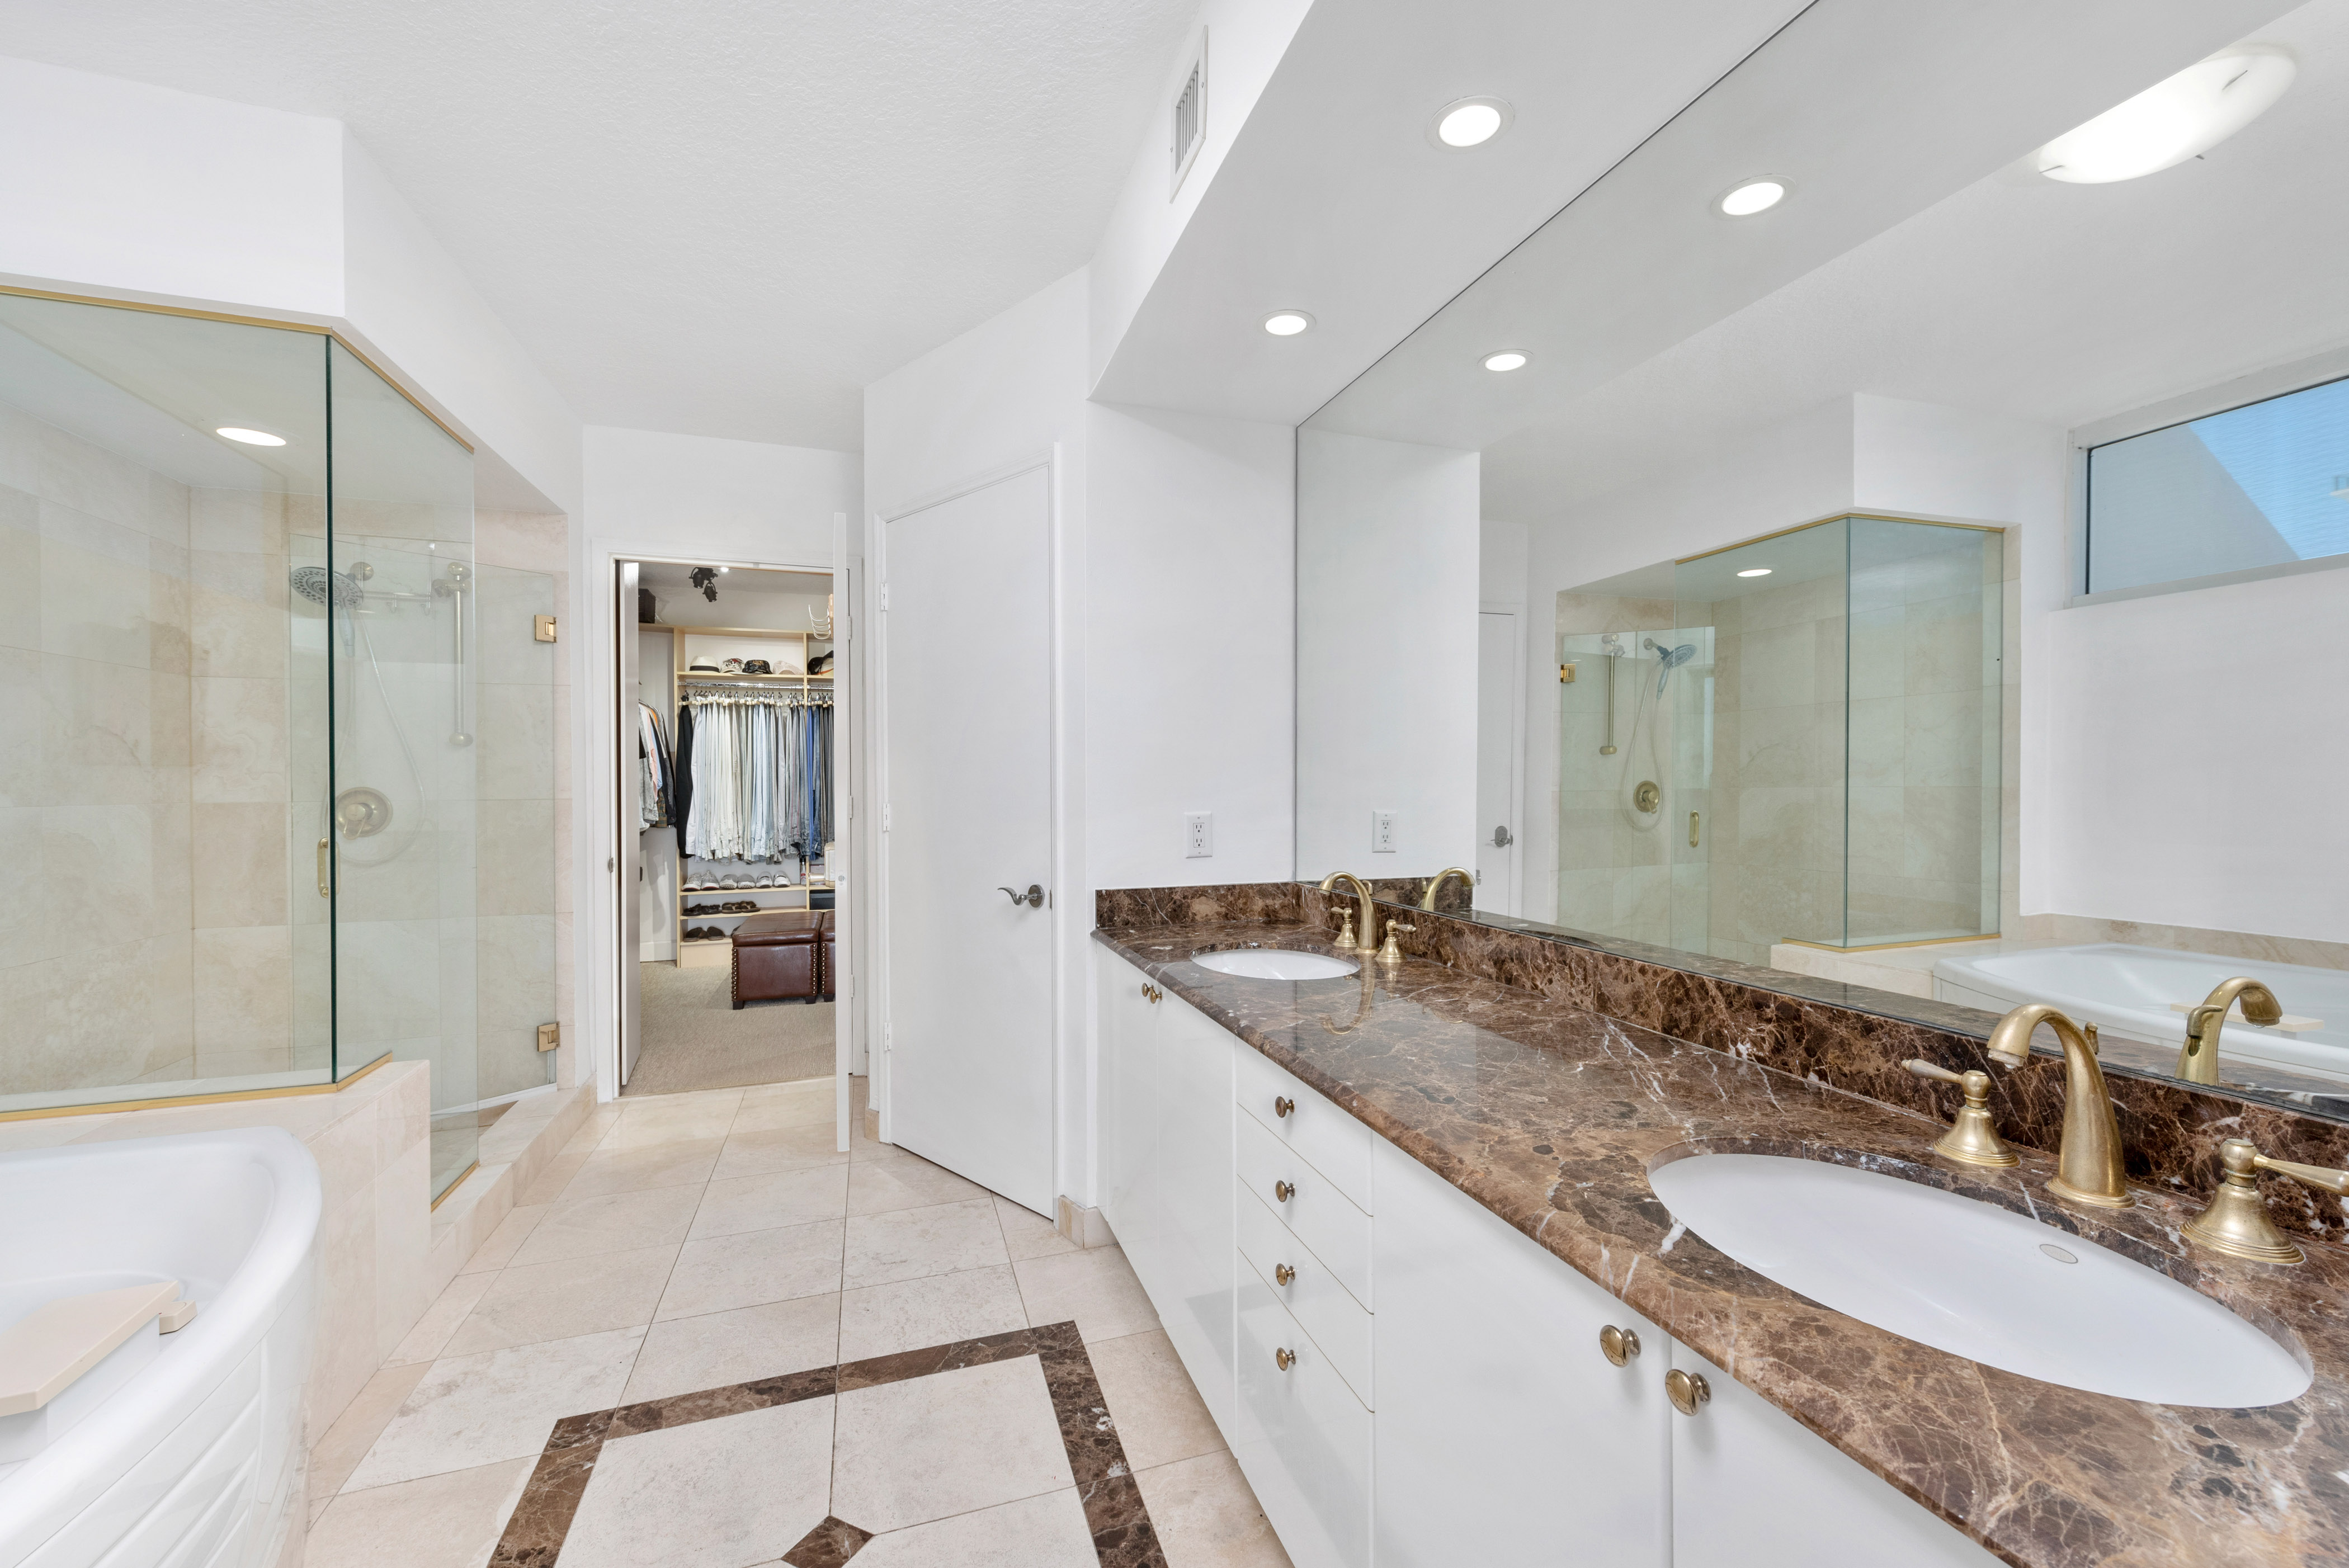 Master bathroom with entrance to large walk-in closet